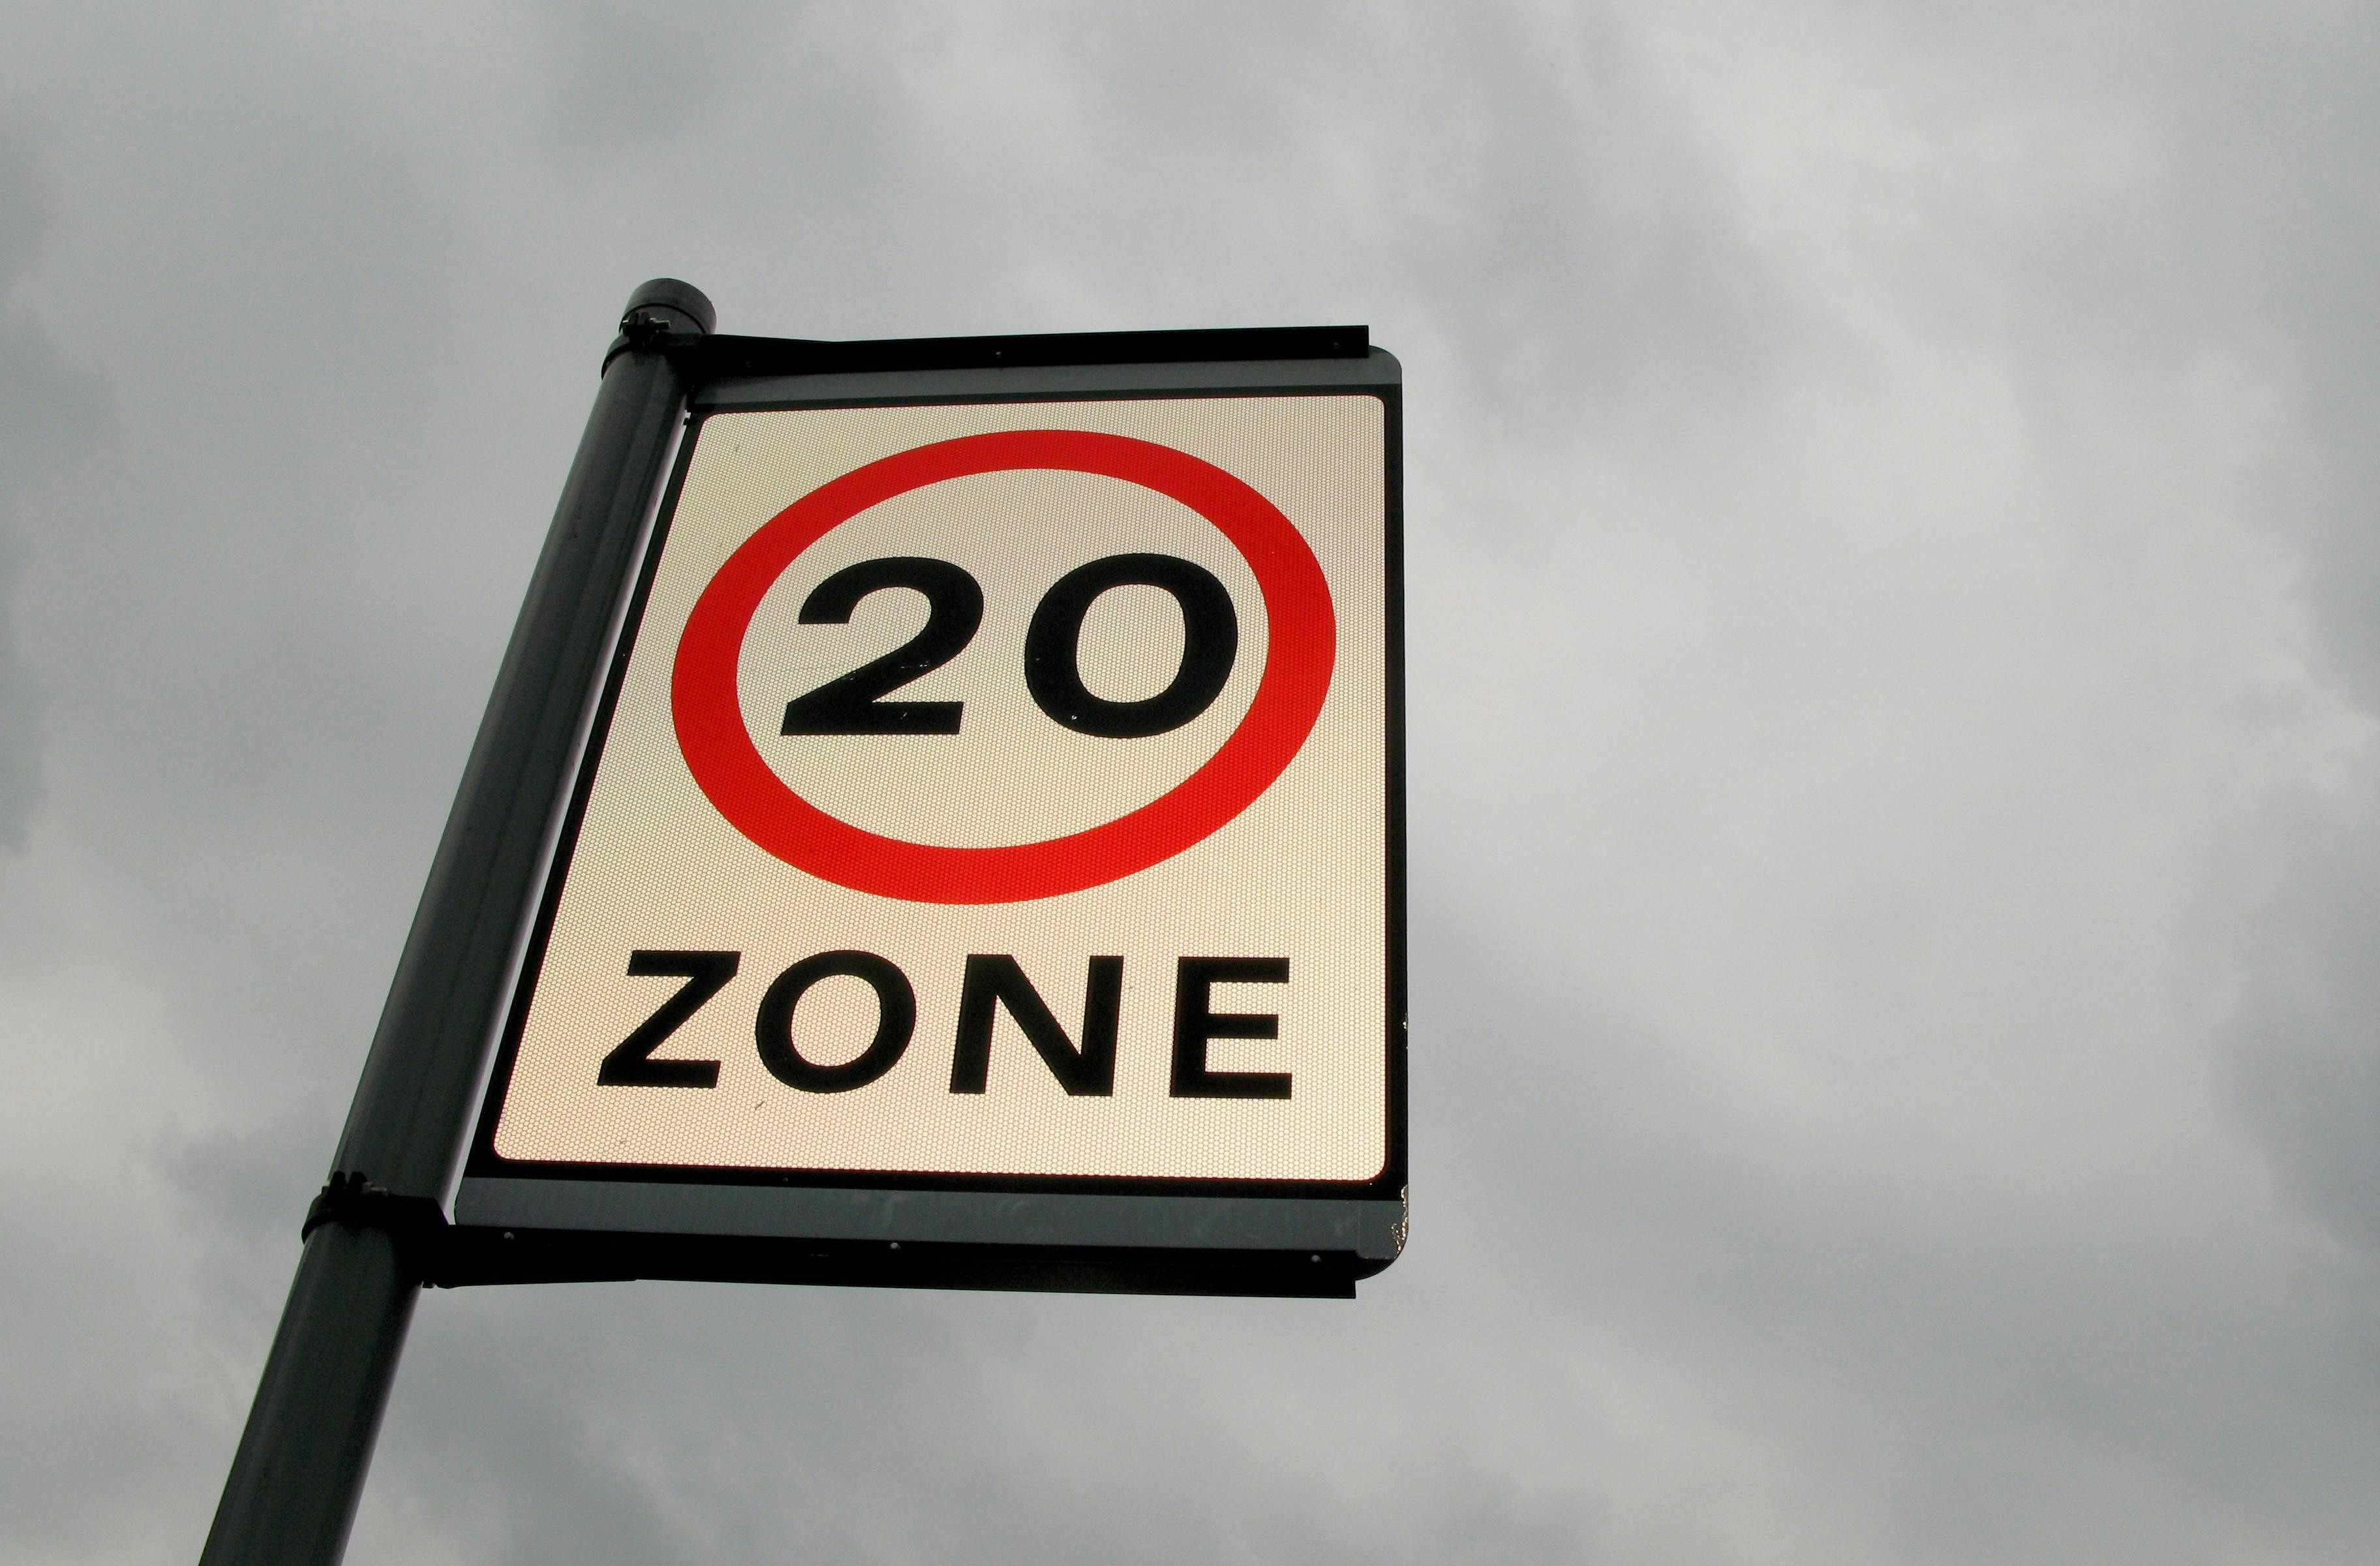 20mph zones are not being actively enforced by the police